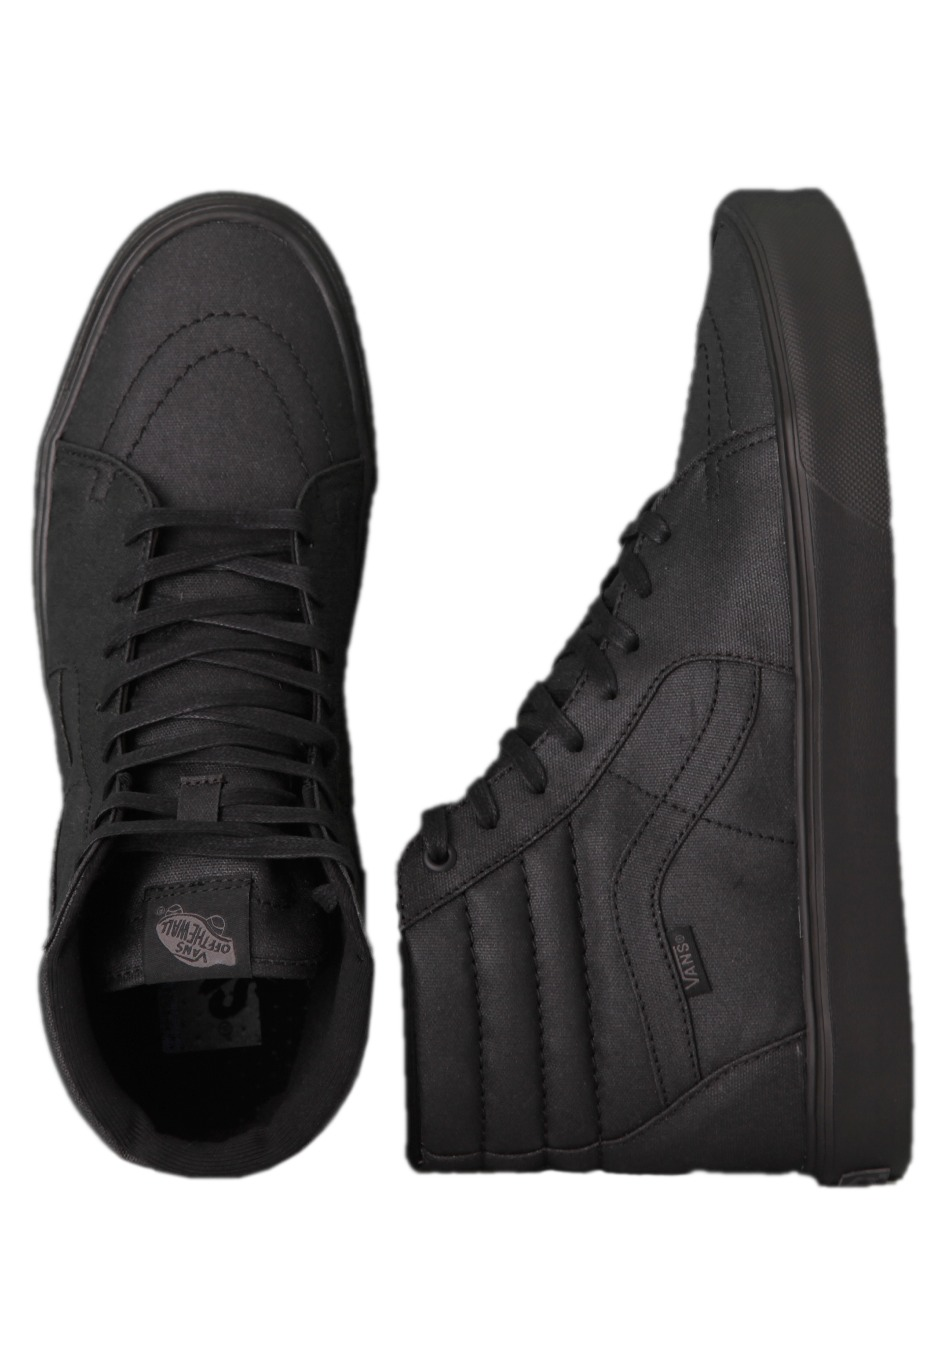 c7c0d5f3b8 Vans - Sk8-Hi Lite Black Waxed Canvas - Shoes - Impericon.com Worldwide